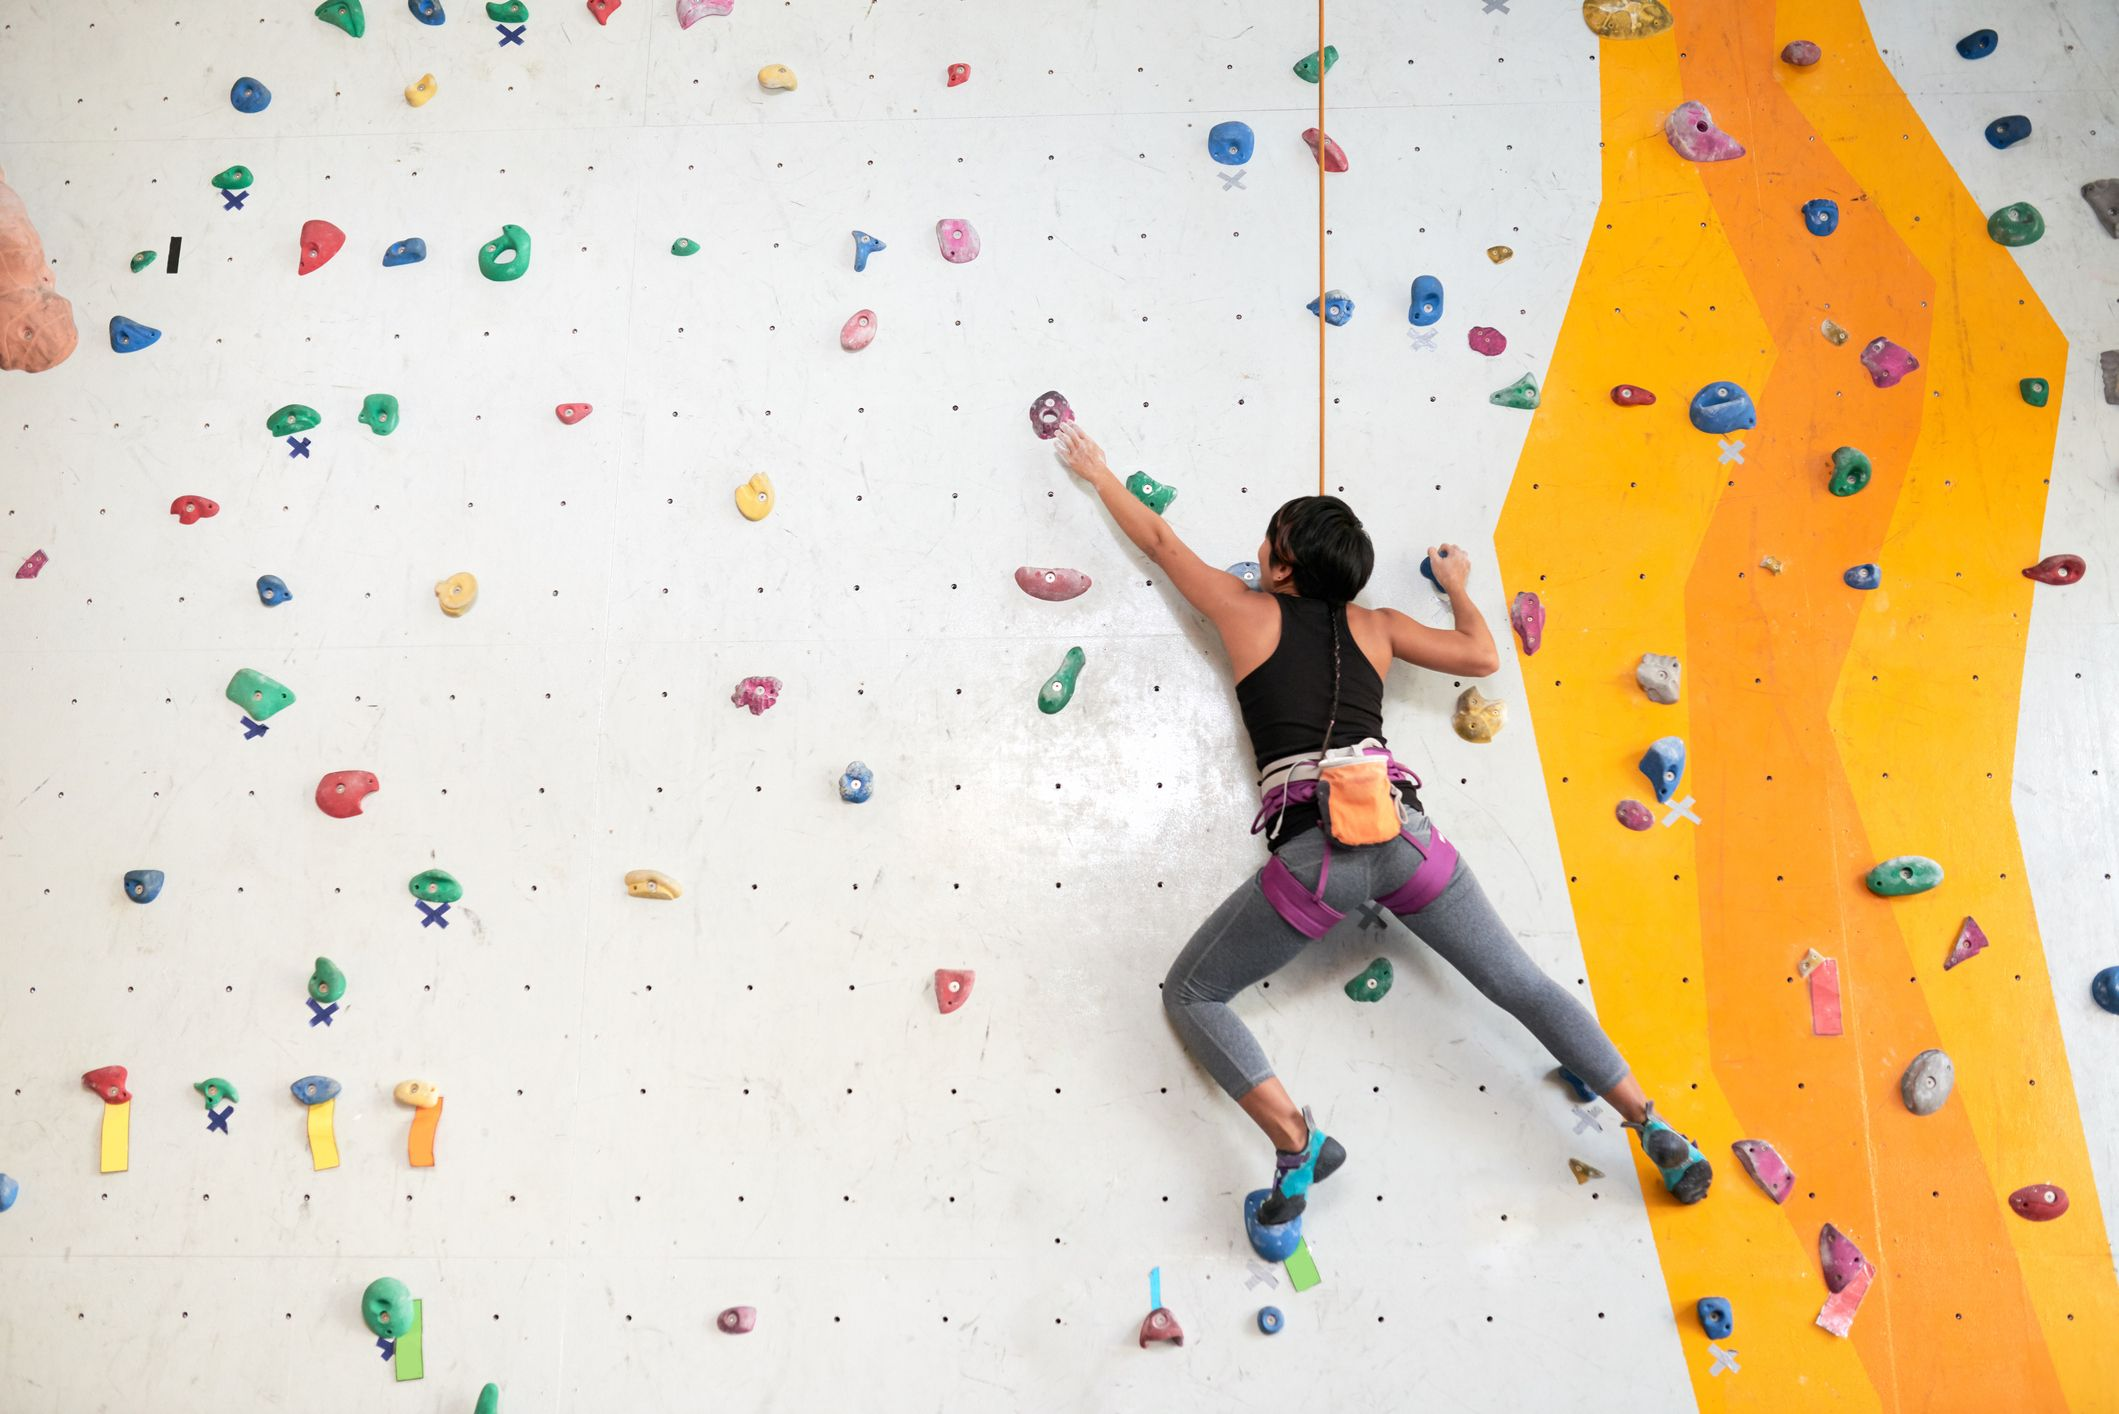 The Best Way To Build Strength For Your Rock-Climbing Workout